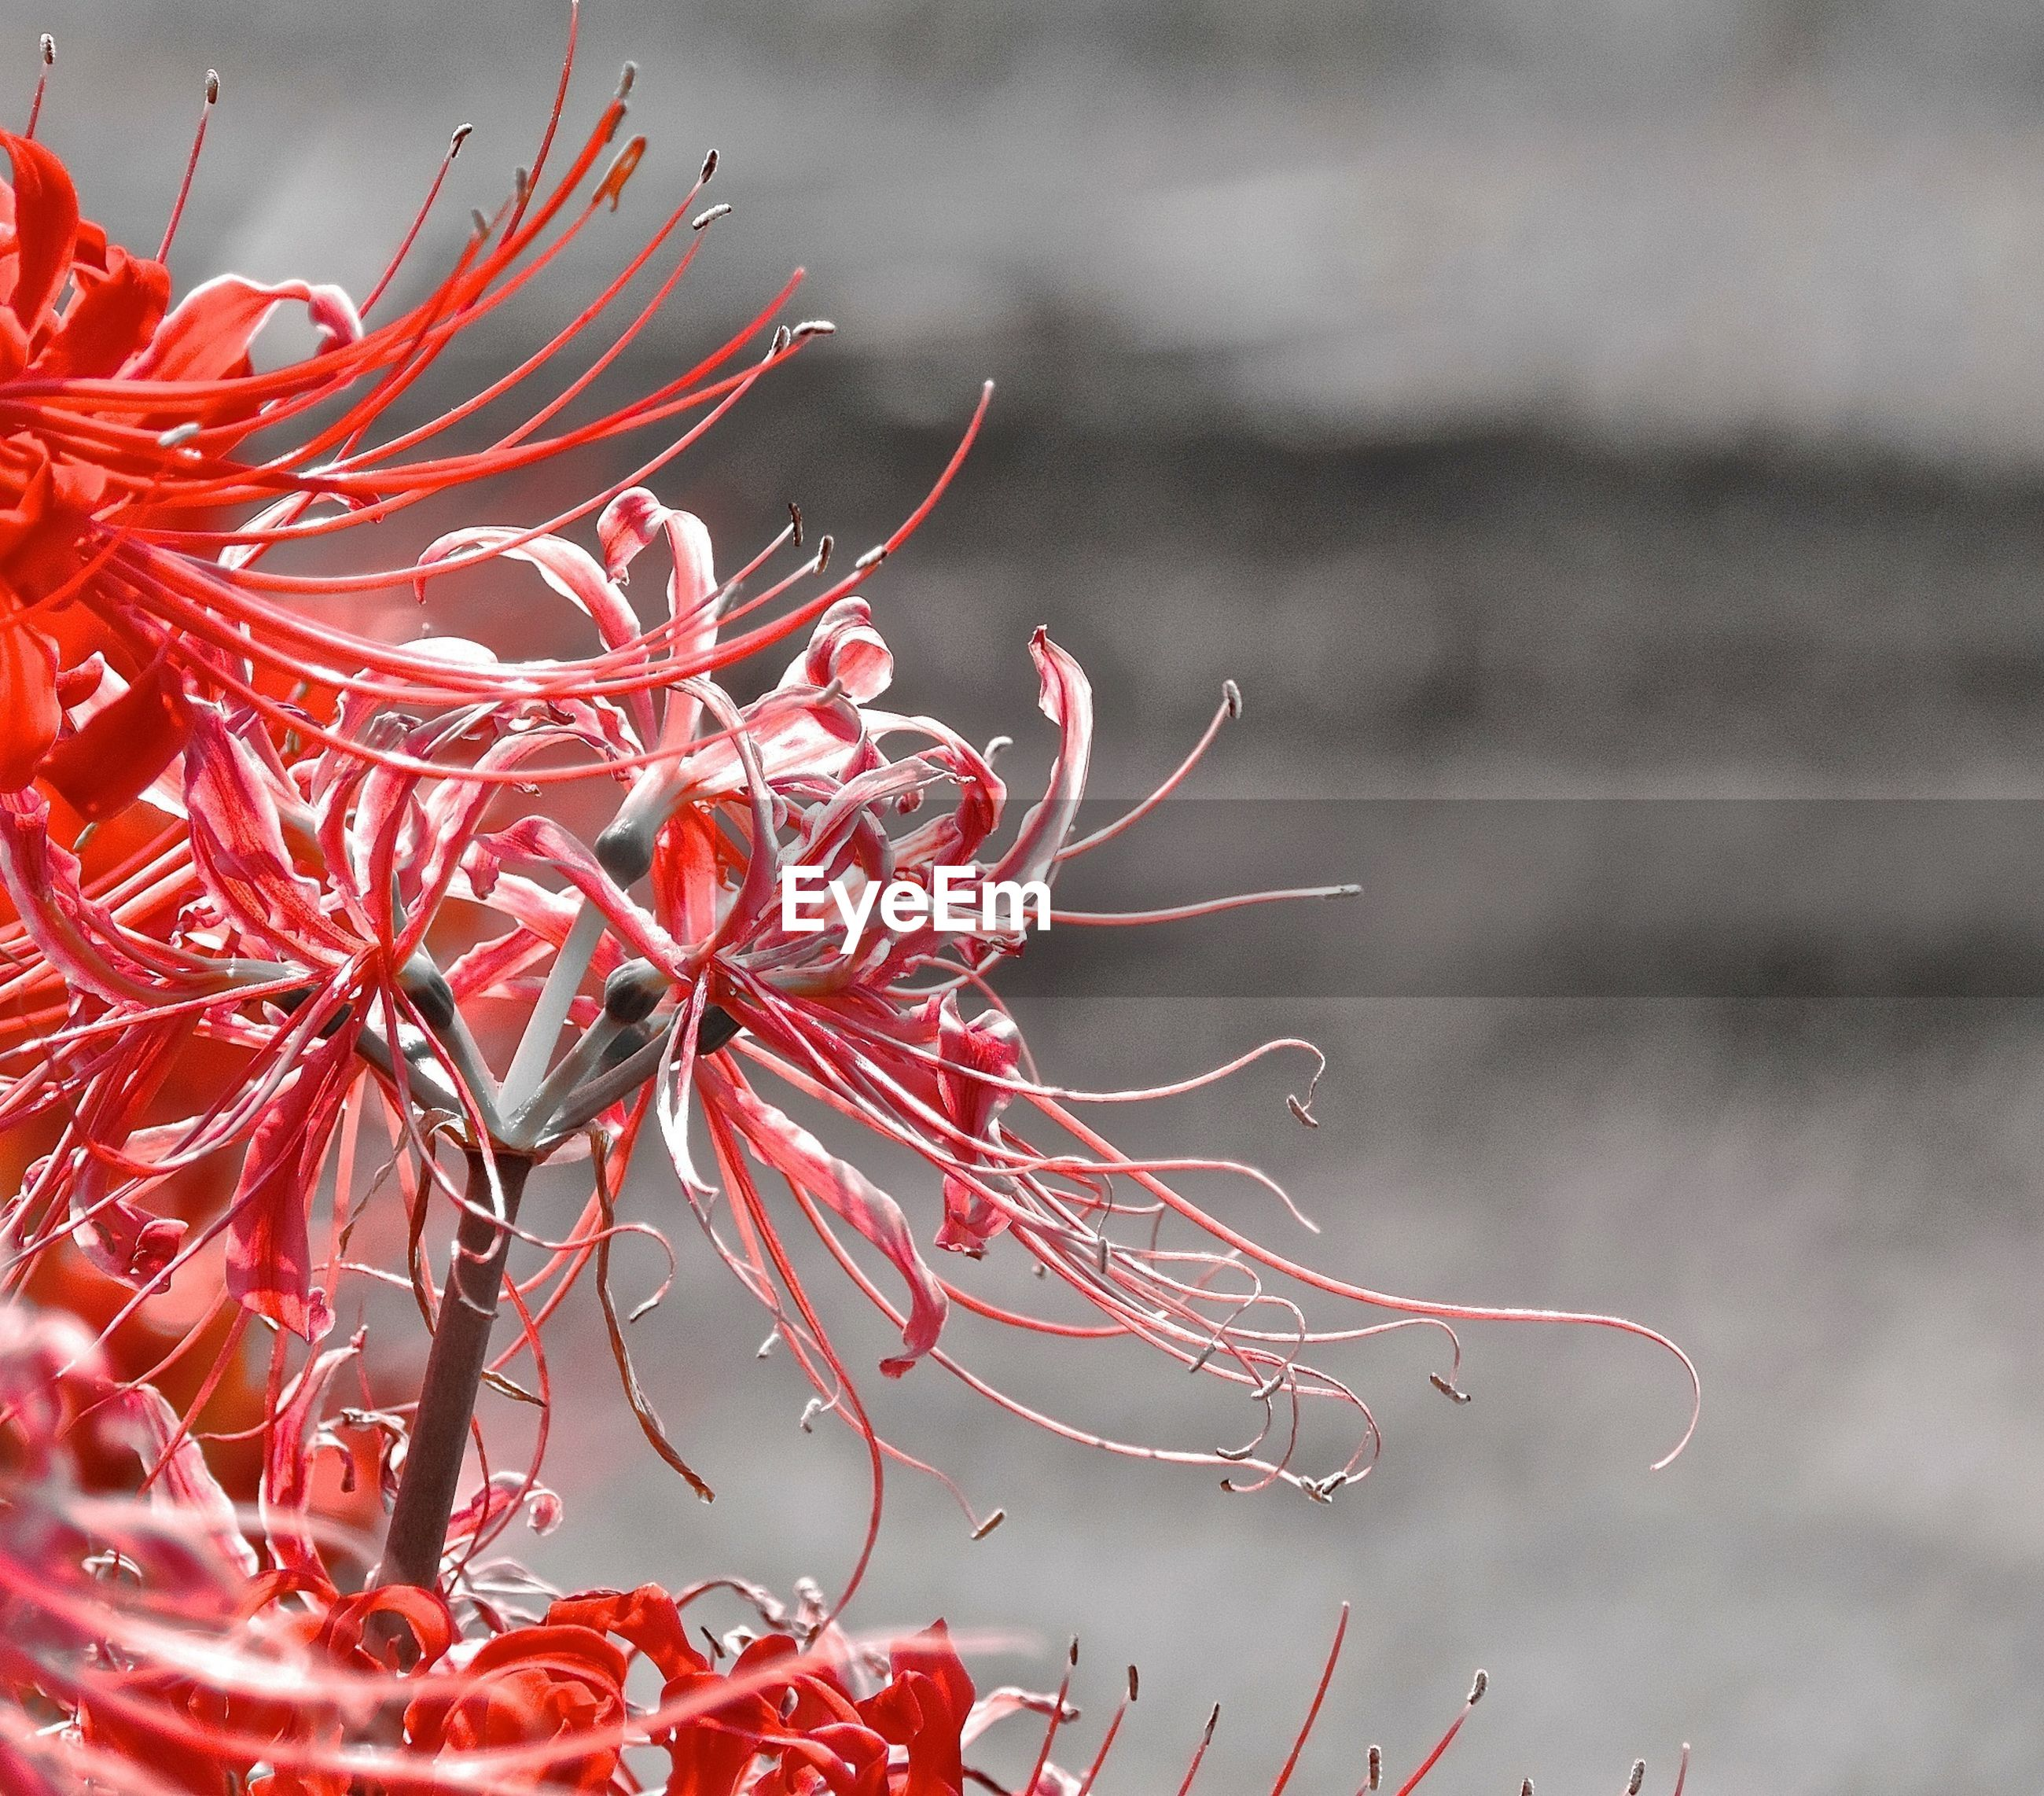 red, close-up, plant, focus on foreground, flower, nature, fragility, growth, beauty in nature, no people, dry, stem, selective focus, outdoors, spiked, day, leaf, natural pattern, freshness, dead plant